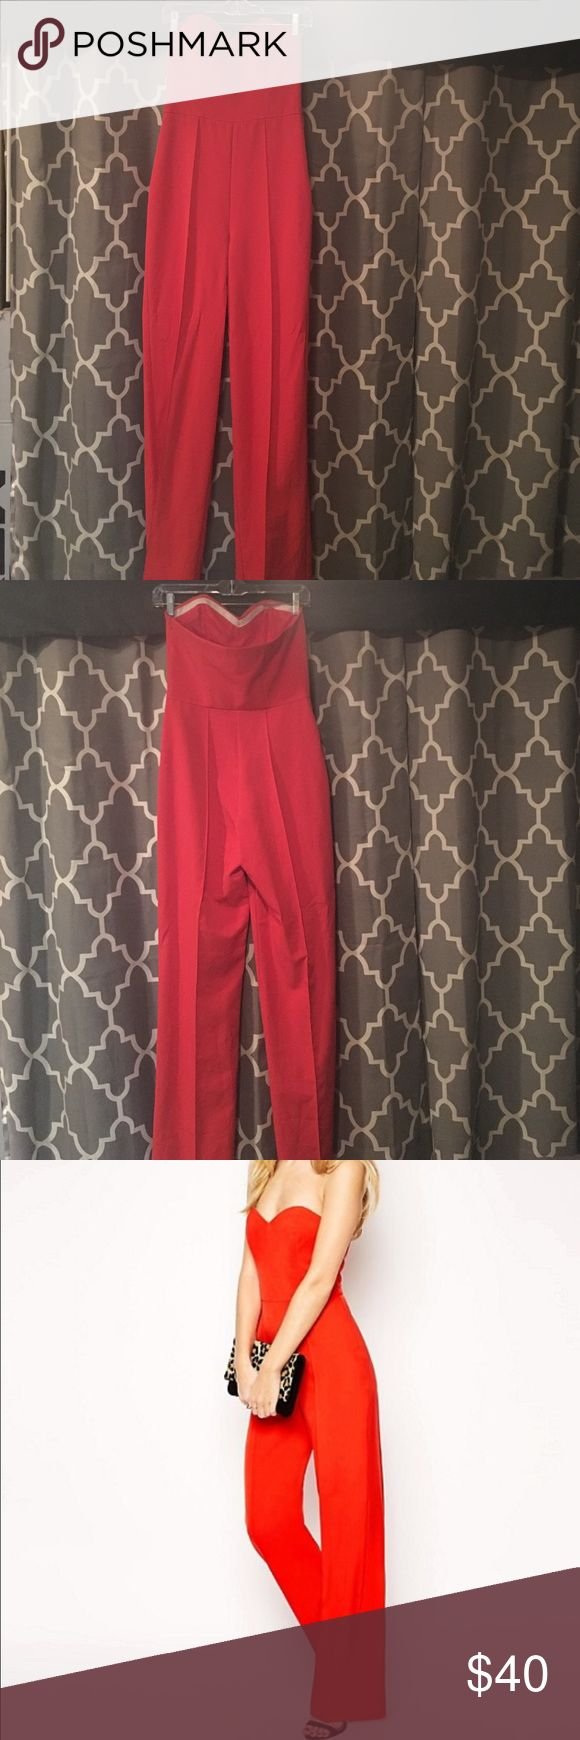 Asos Premium red bandeau jumpsuit Red, strapless jumpsuit, worn once, great condition, reasonable offers will be considered ASOS Dresses Strapless